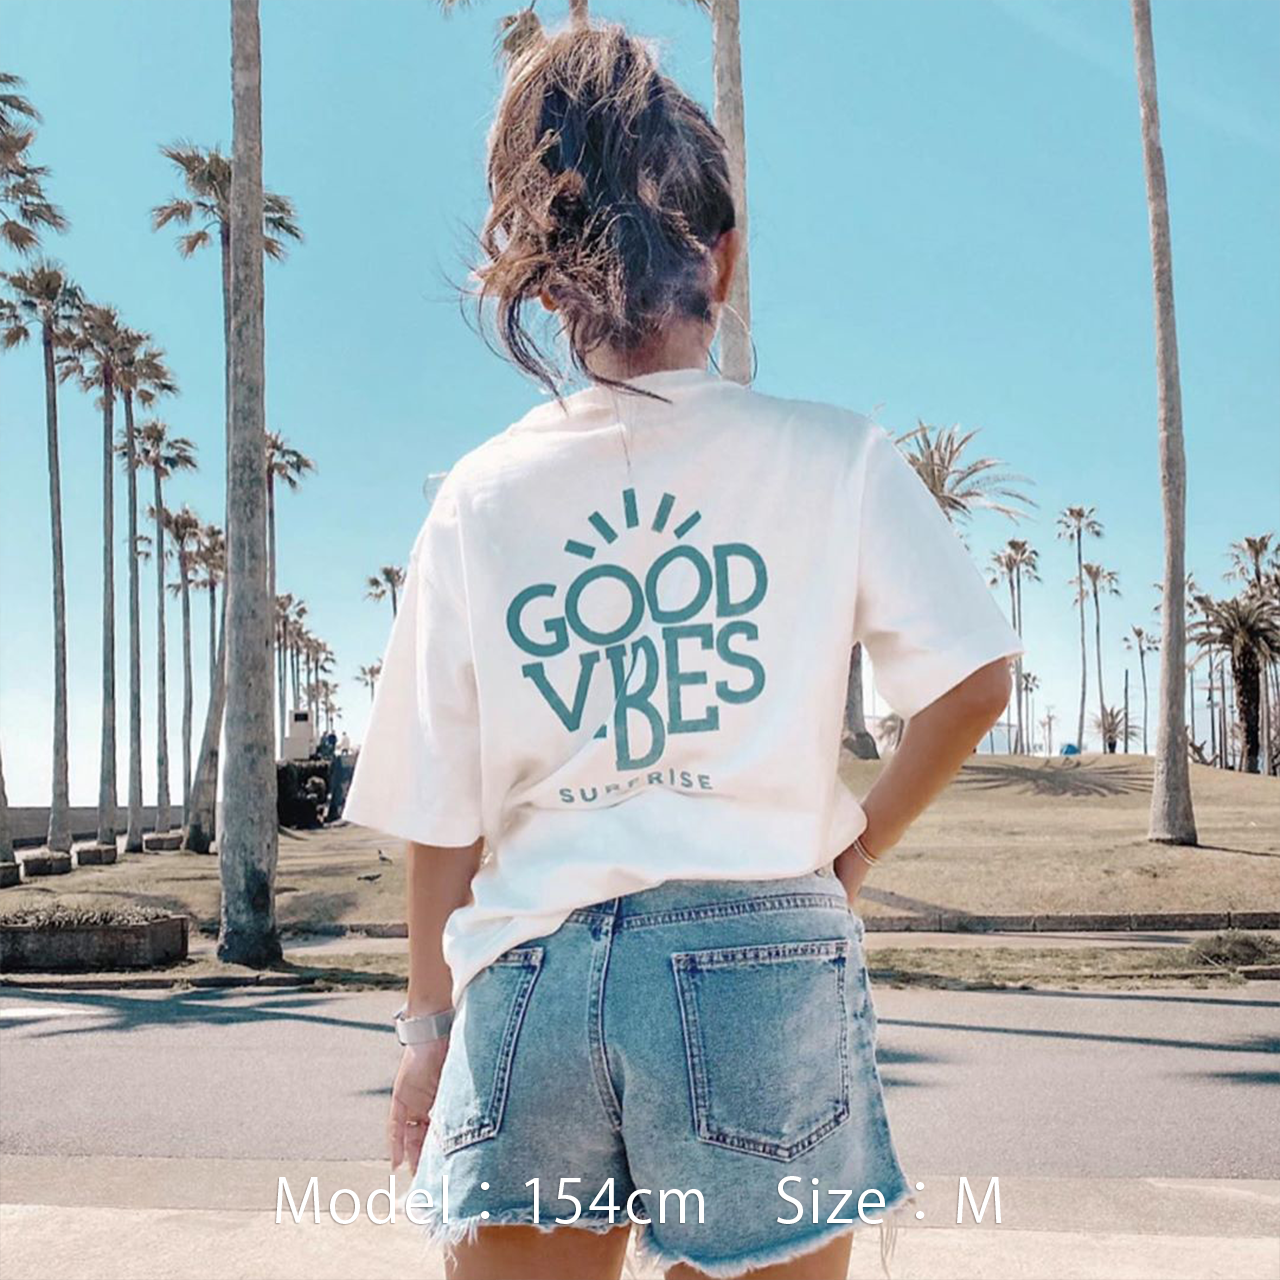 GOOD VIBES Tee - Vintage white